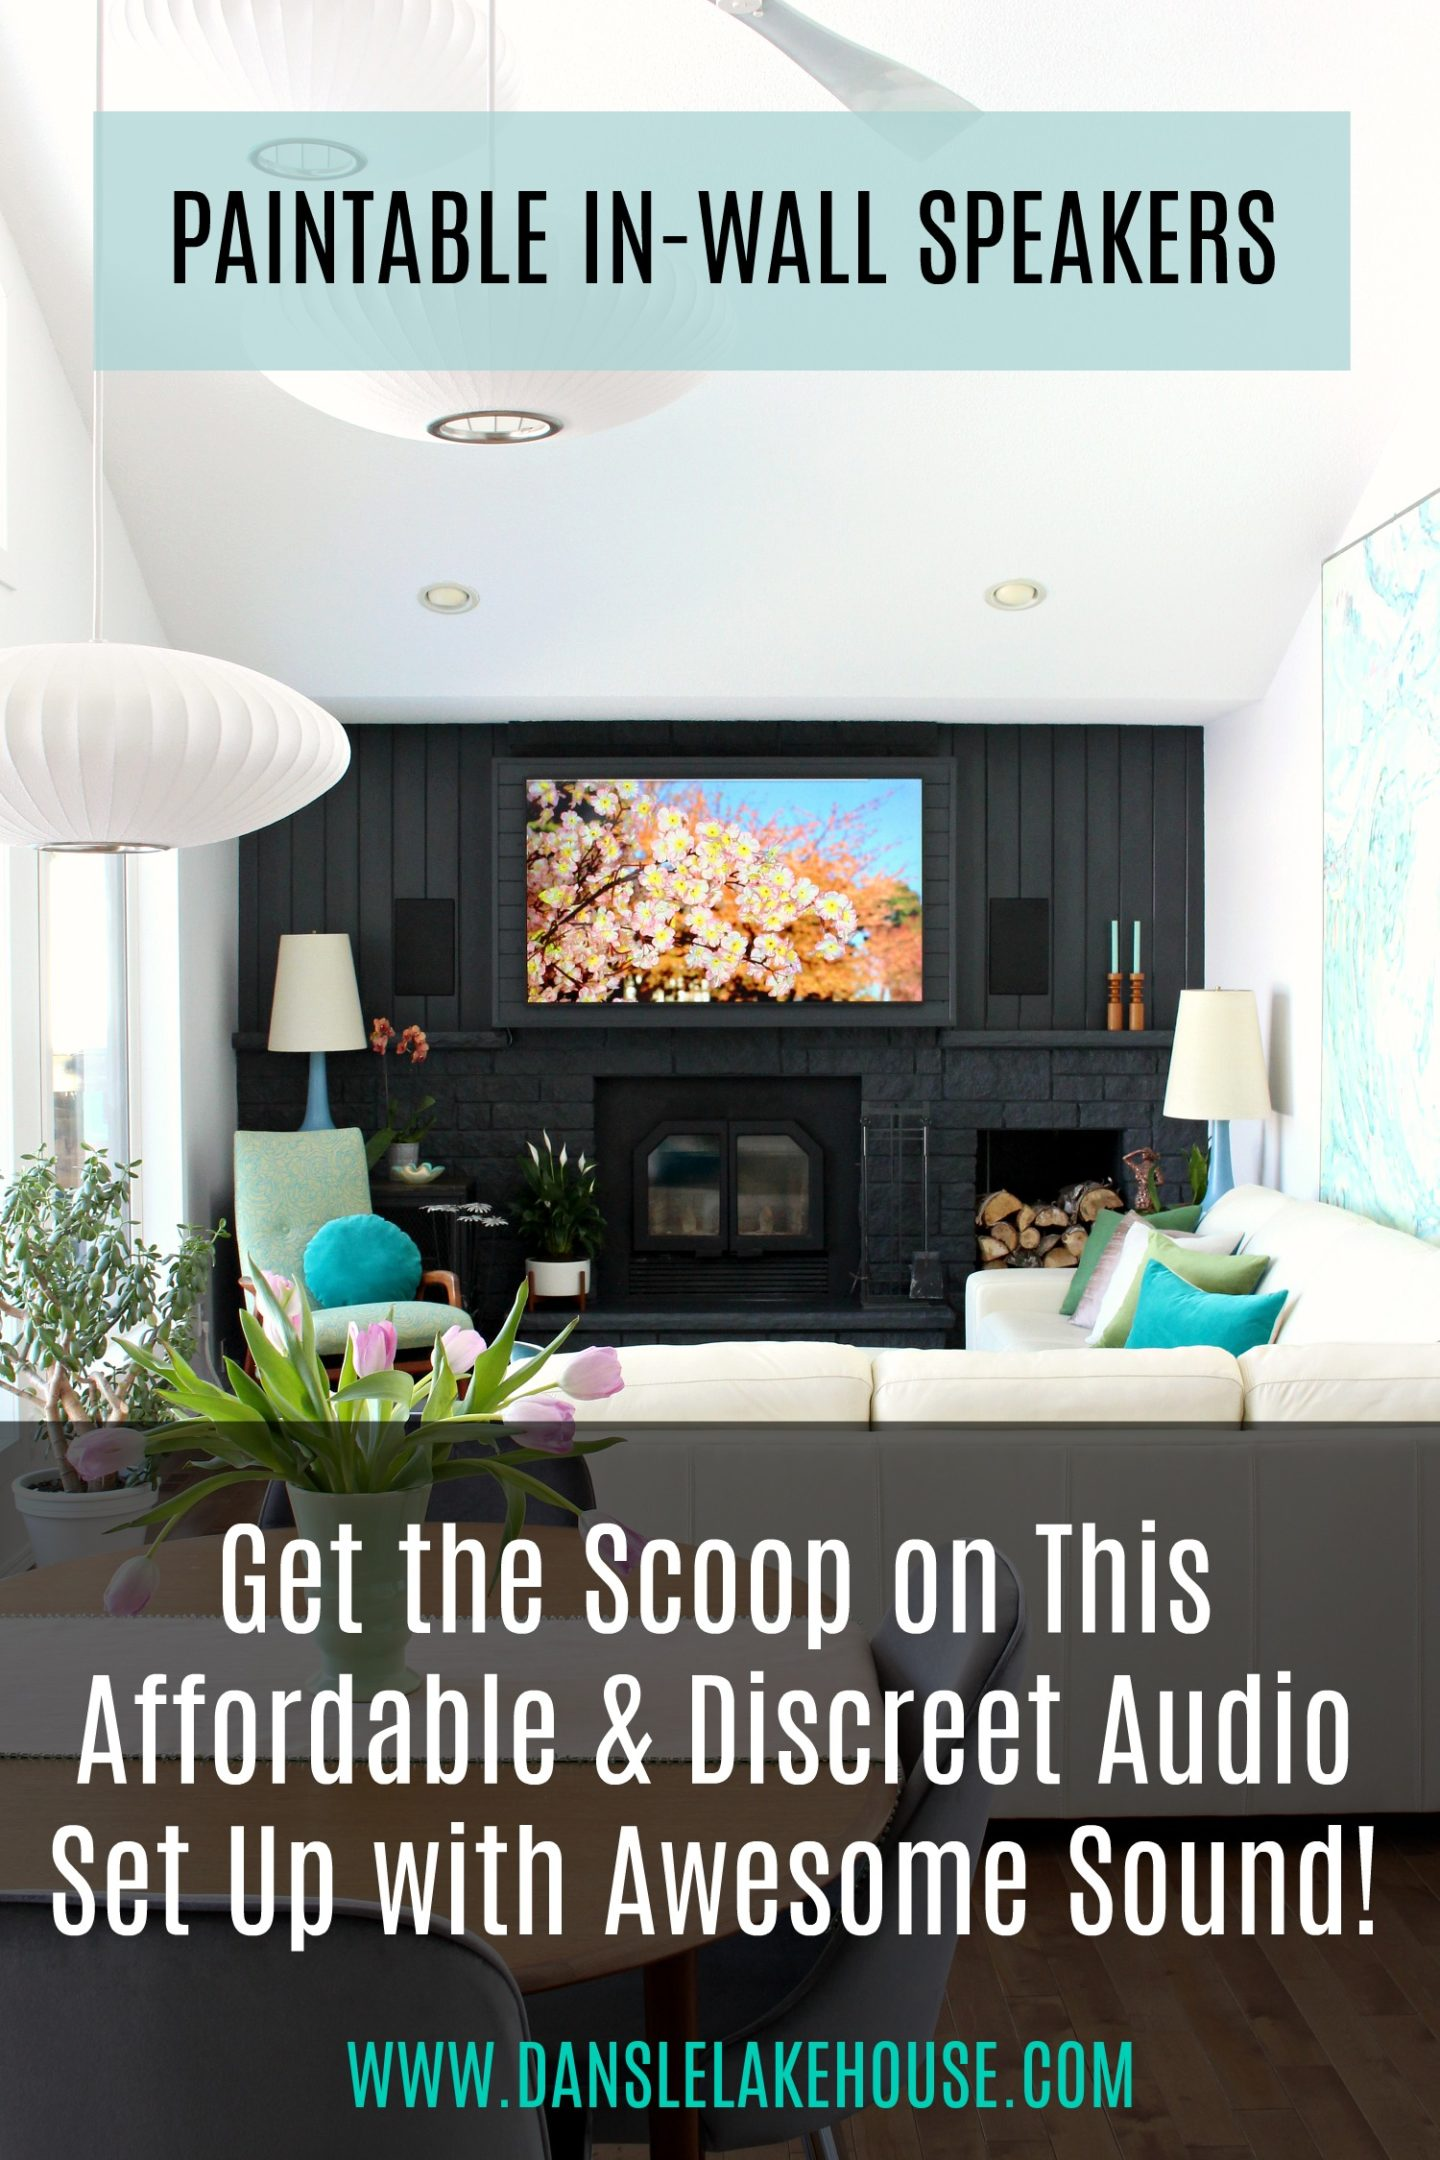 Want a great audio set up that doesn't look horrible! Check out these paintable in-wall speakers! Paint them ANY color to blend in with walls. Click through for exact product link - plus the link for the small receiver and subwoofer user here - they fit in a small media cabinet! Create a beautiful living room with amazing sound. #livingroom #audiosetup #speakers #tv